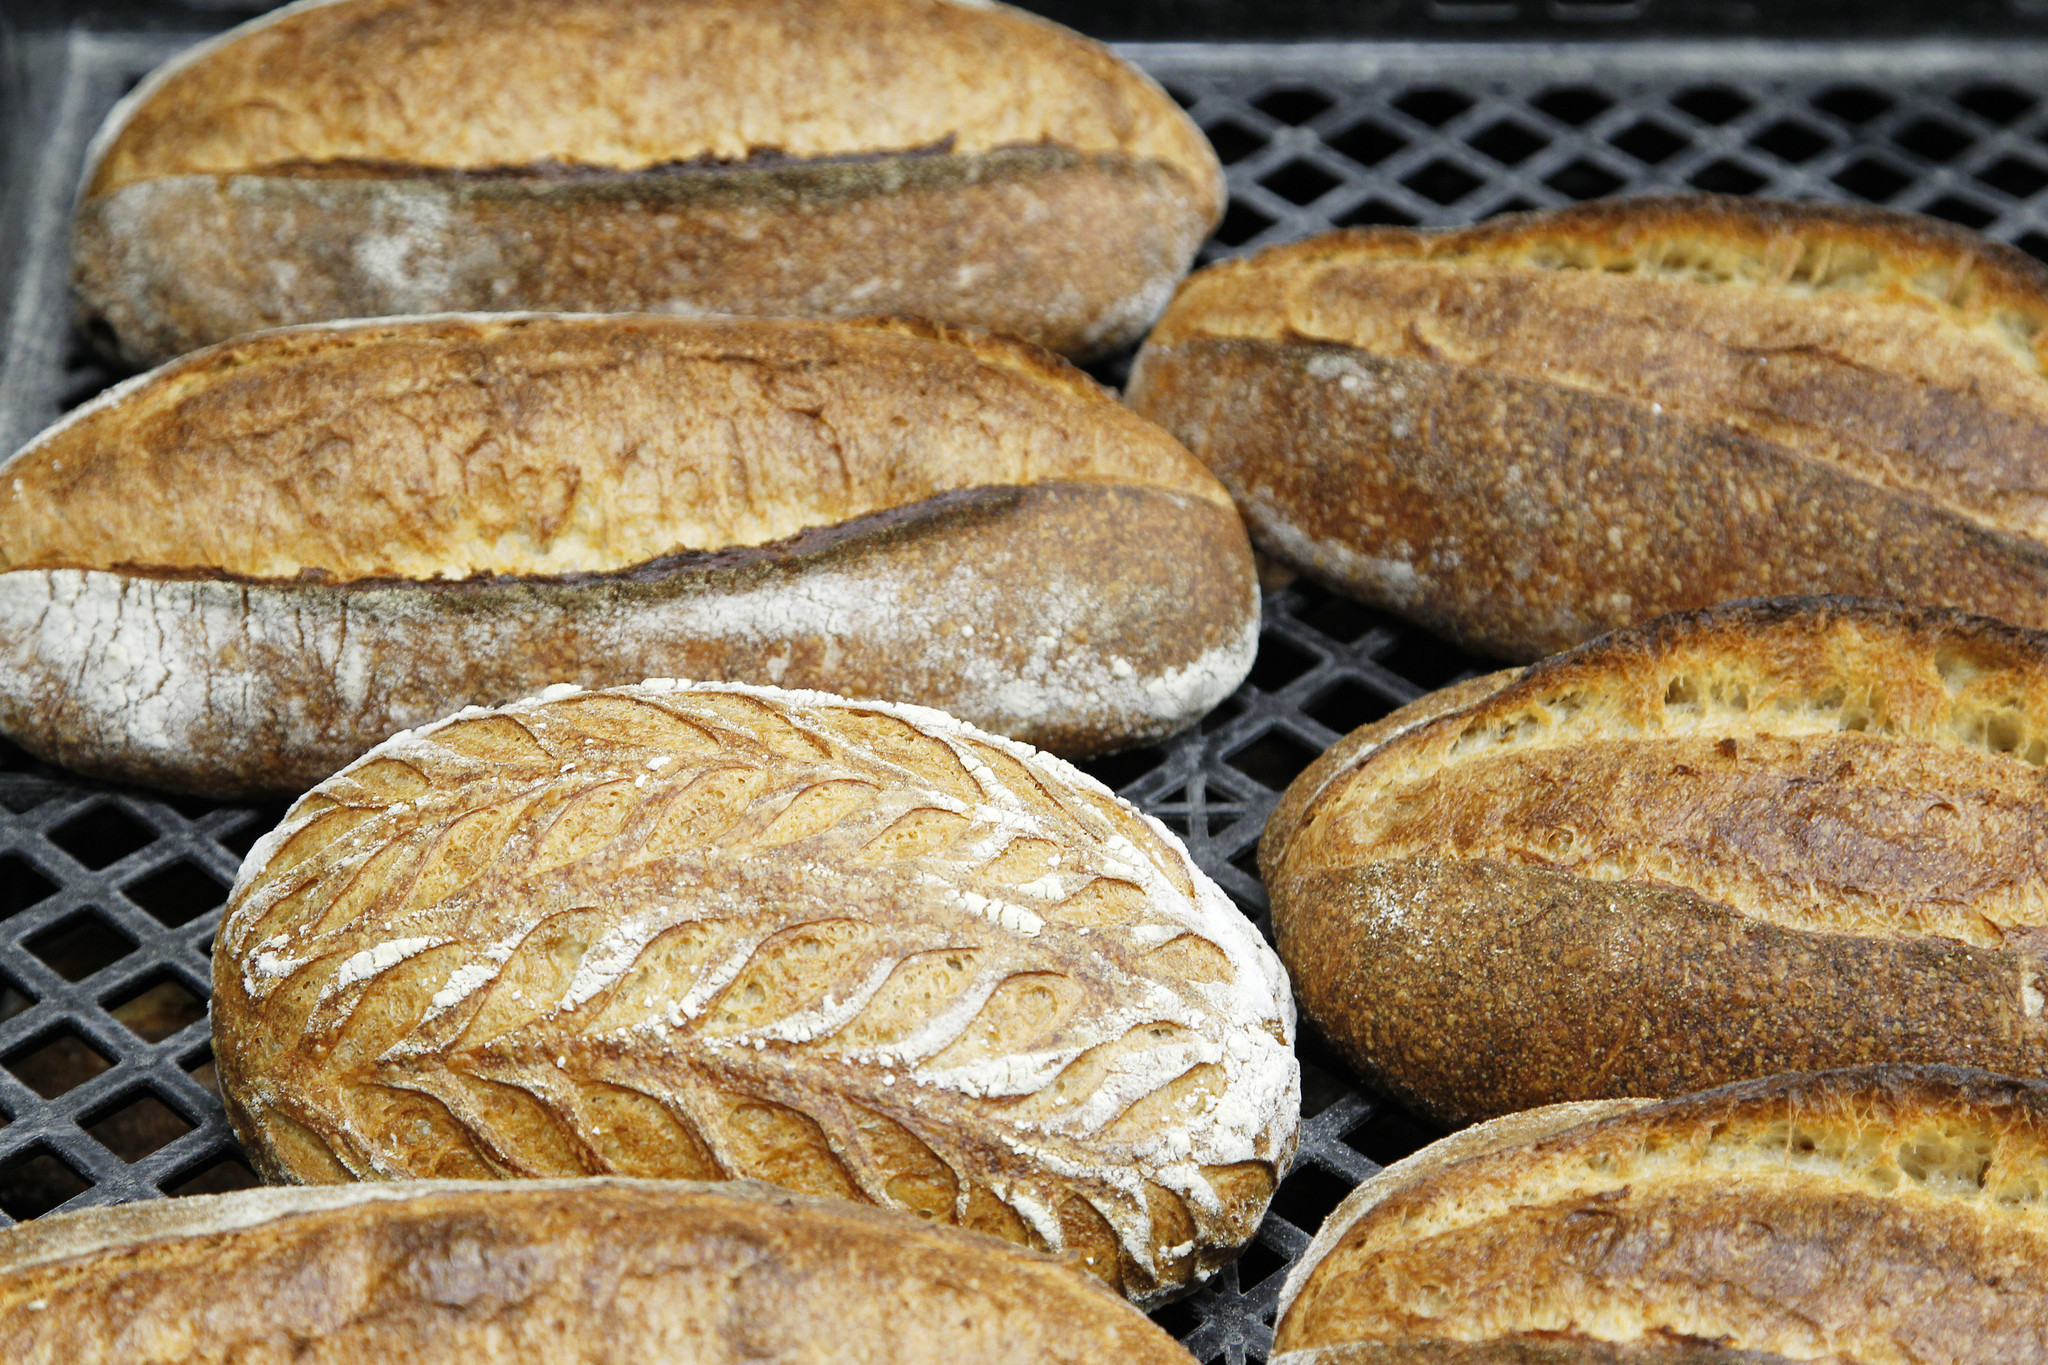 Baking Brothers Expand Old World Traditions